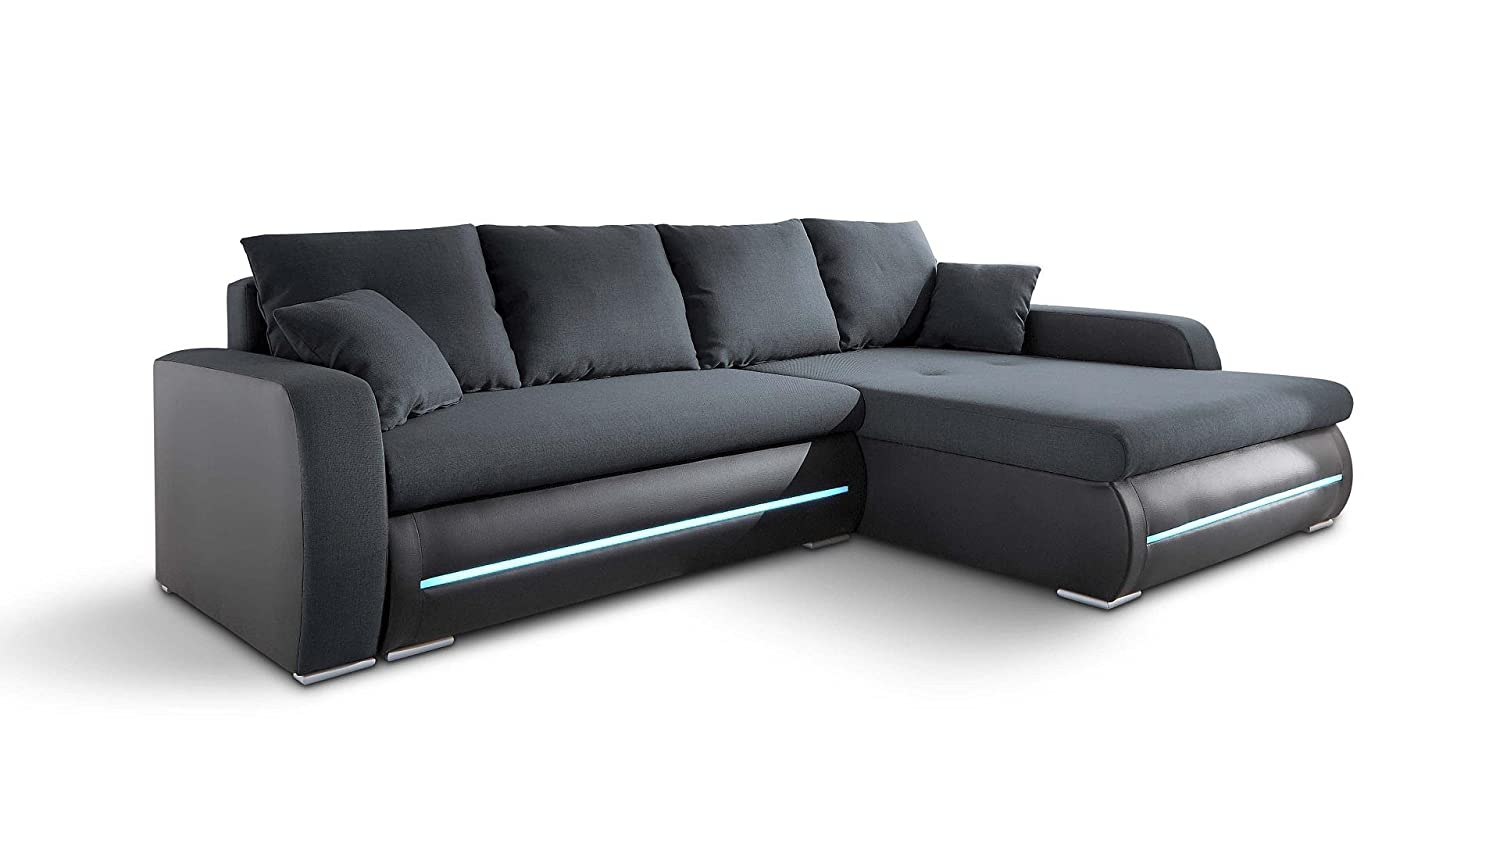 schlafsofa g nstig. Black Bedroom Furniture Sets. Home Design Ideas